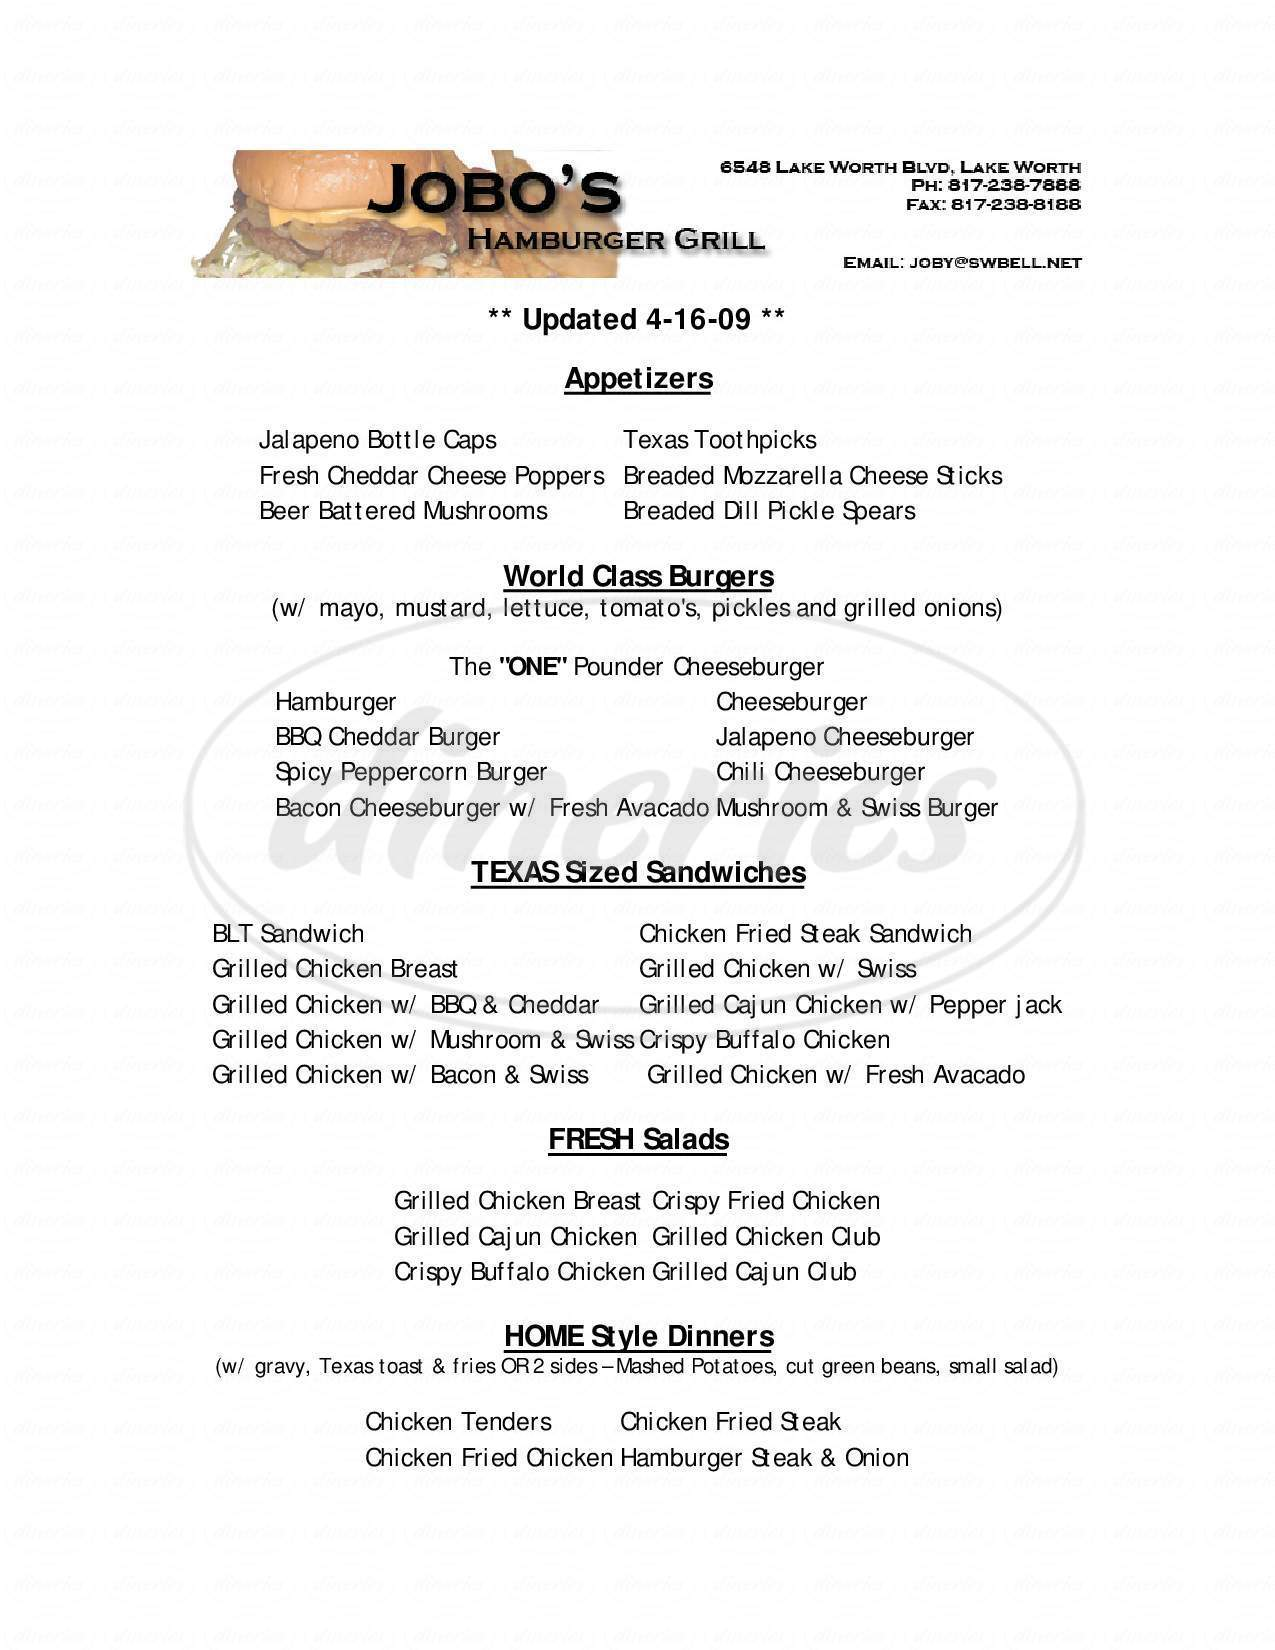 menu for Jobo's Hamburger Grill